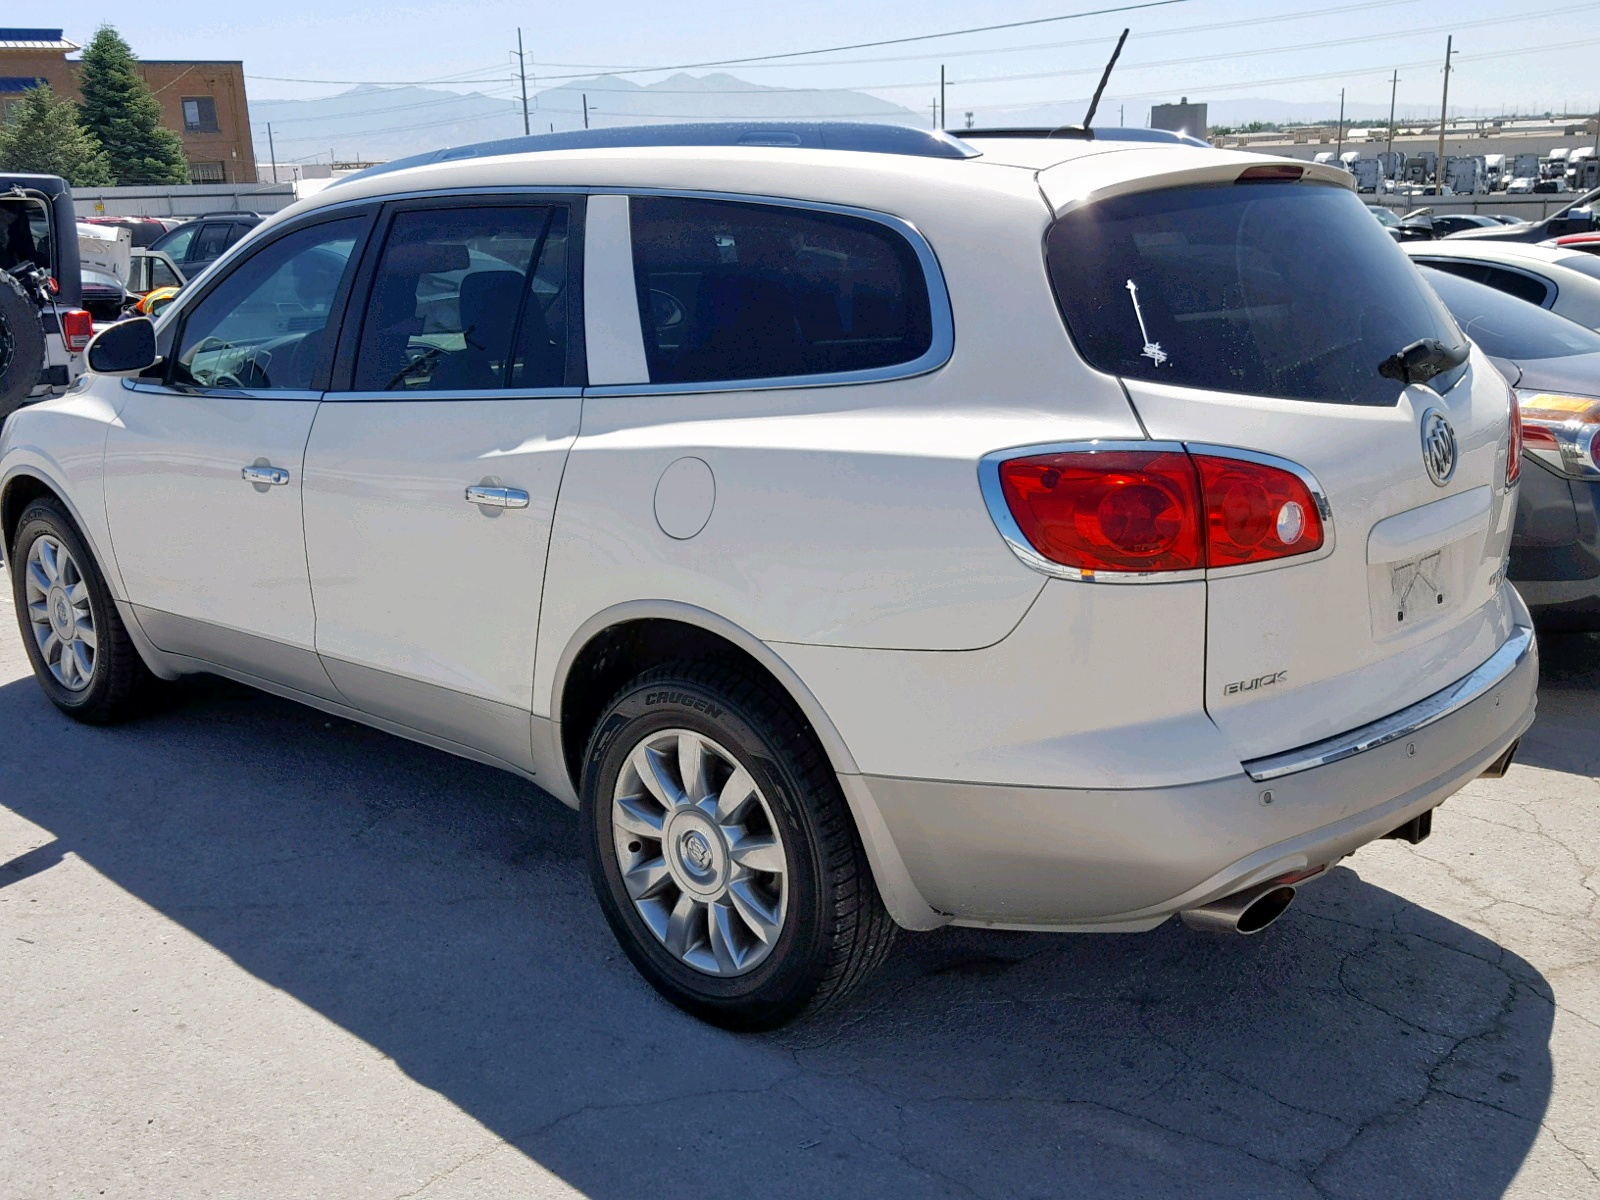 5GAKVCED1CJ321648 - 2012 Buick Enclave 3.6L [Angle] View